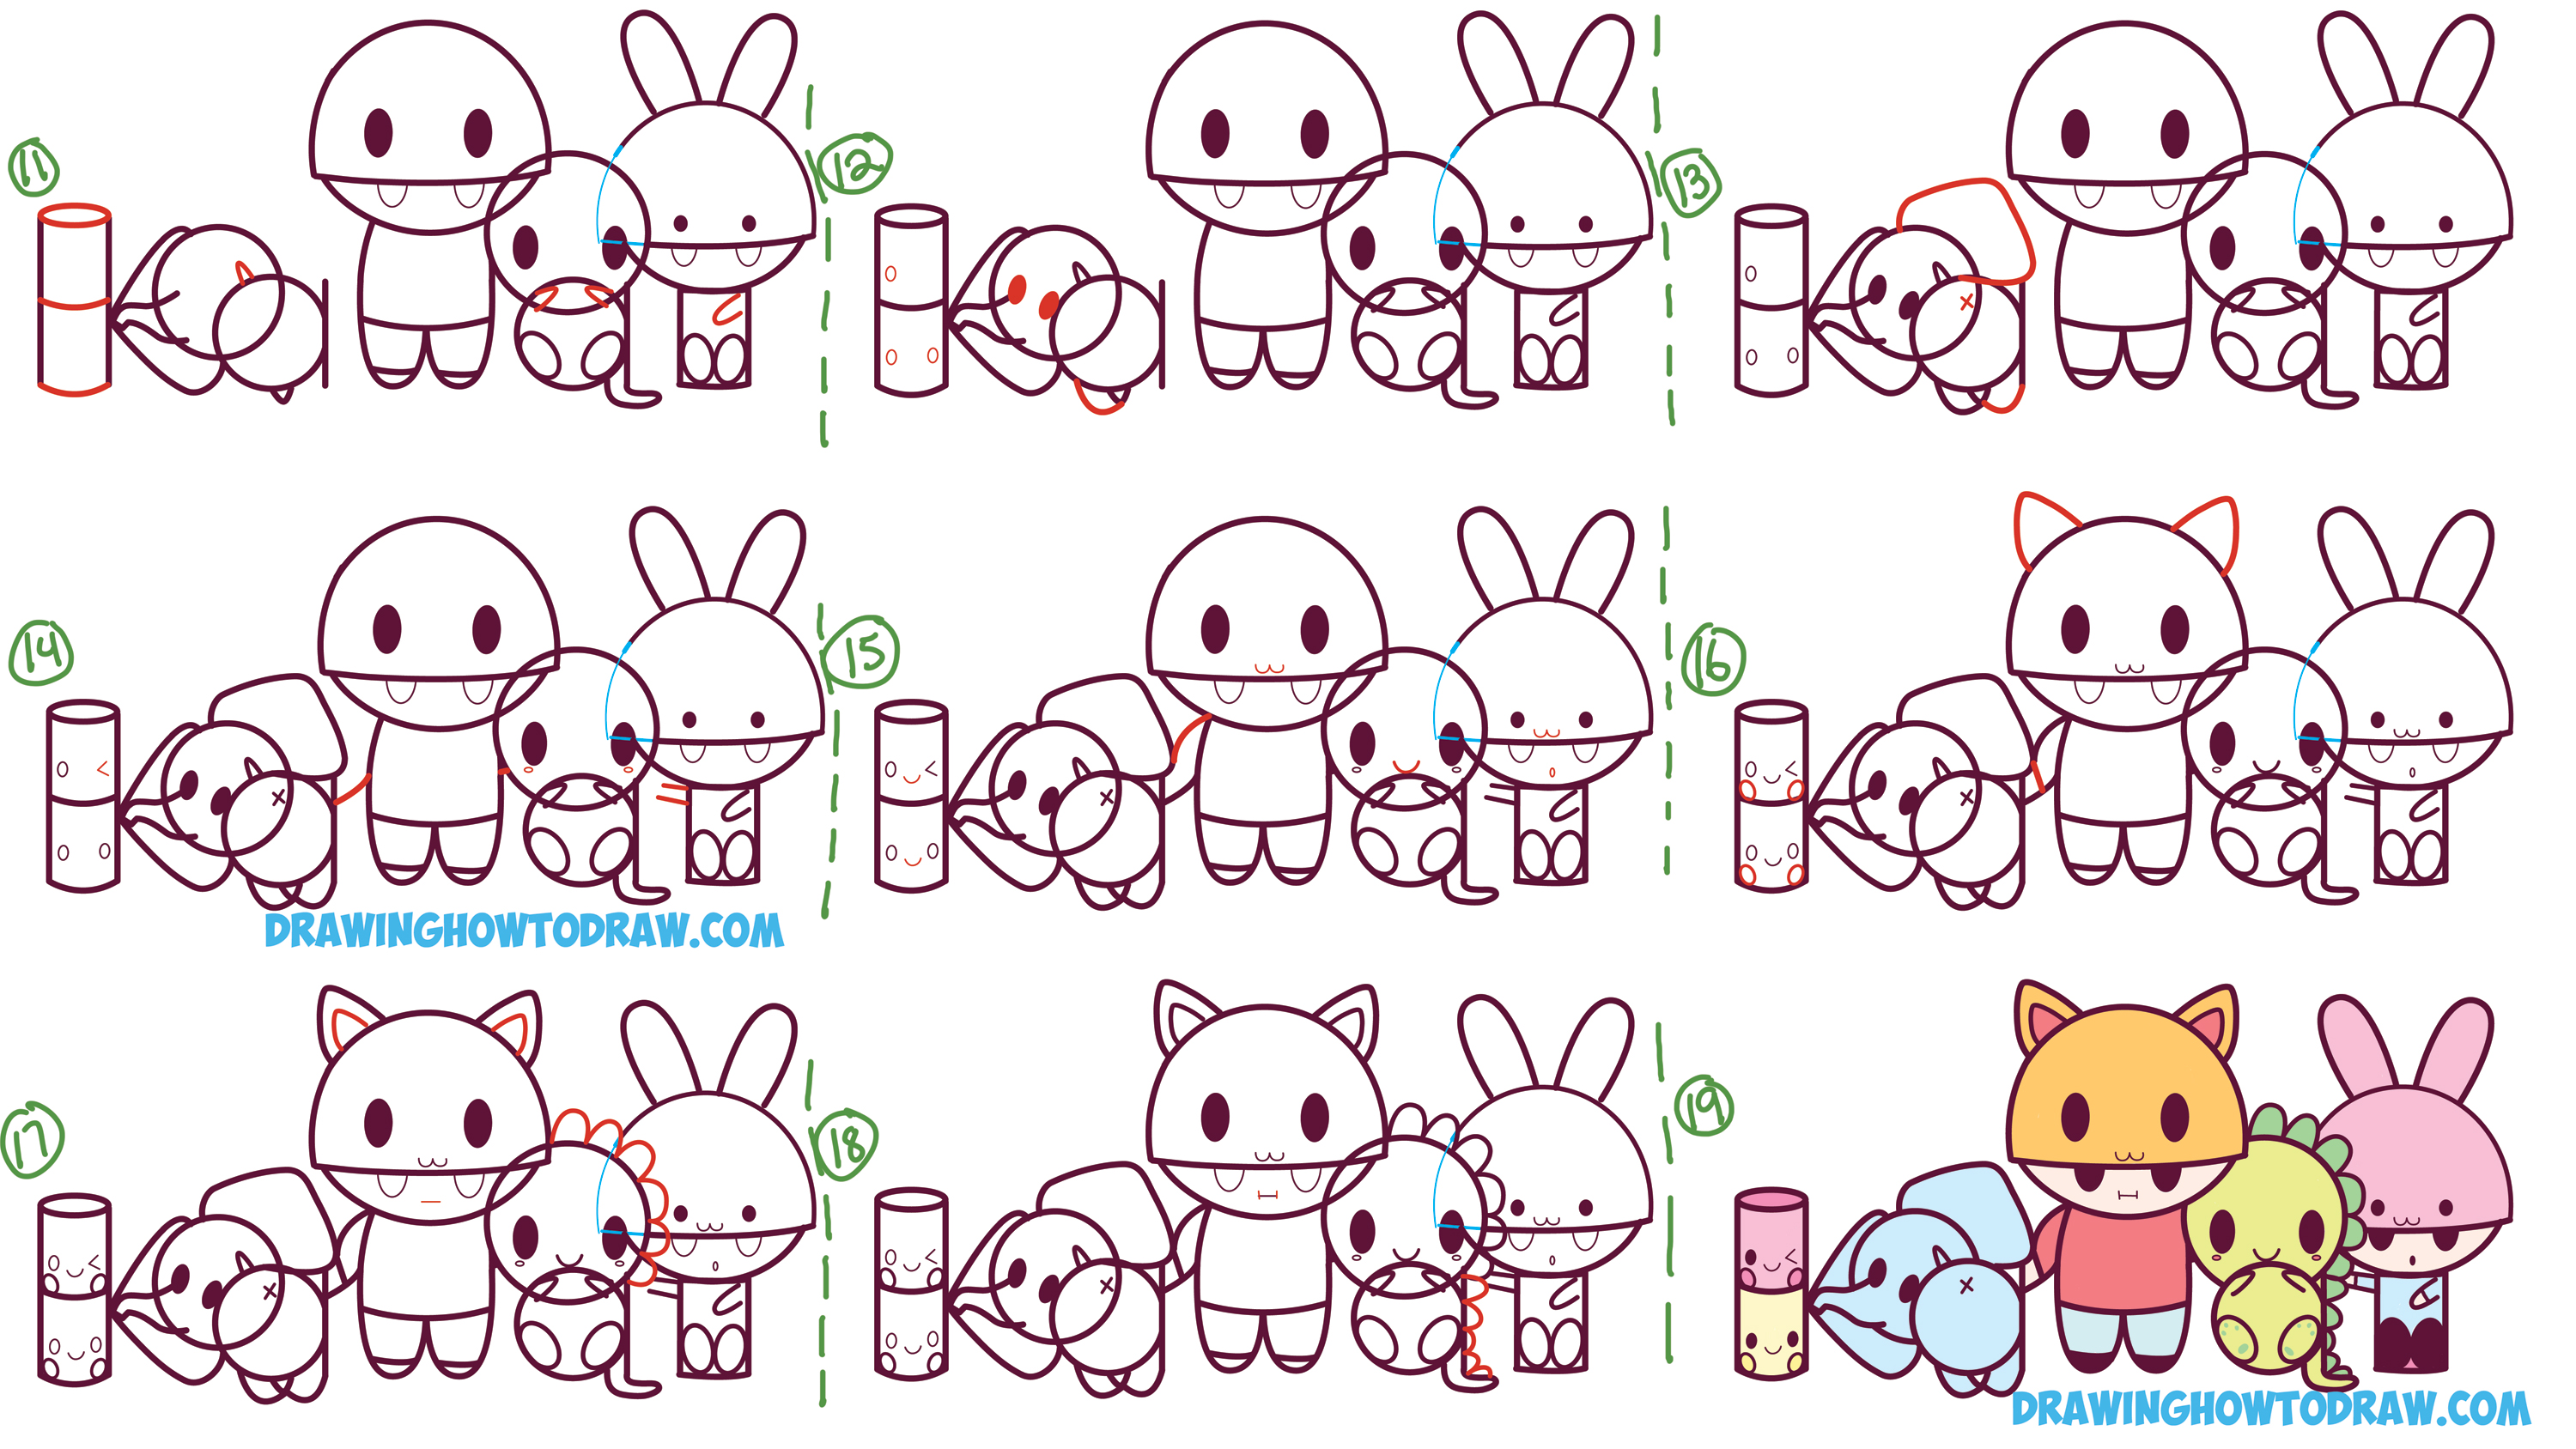 how to draw kawaii characters animals and people from